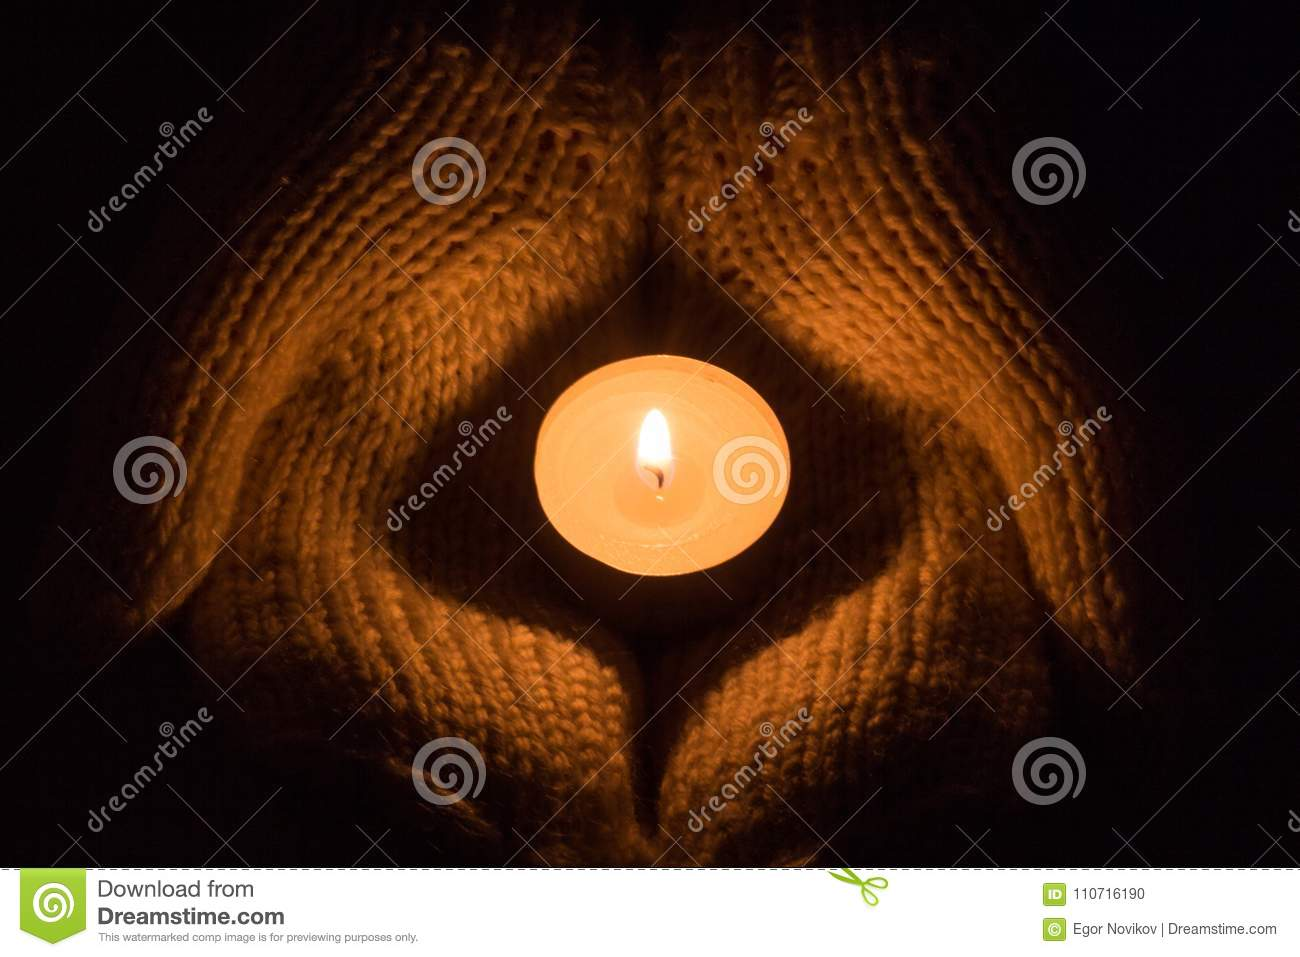 Candle light glowing in woman`s hands. Praying, faith, religion concept.